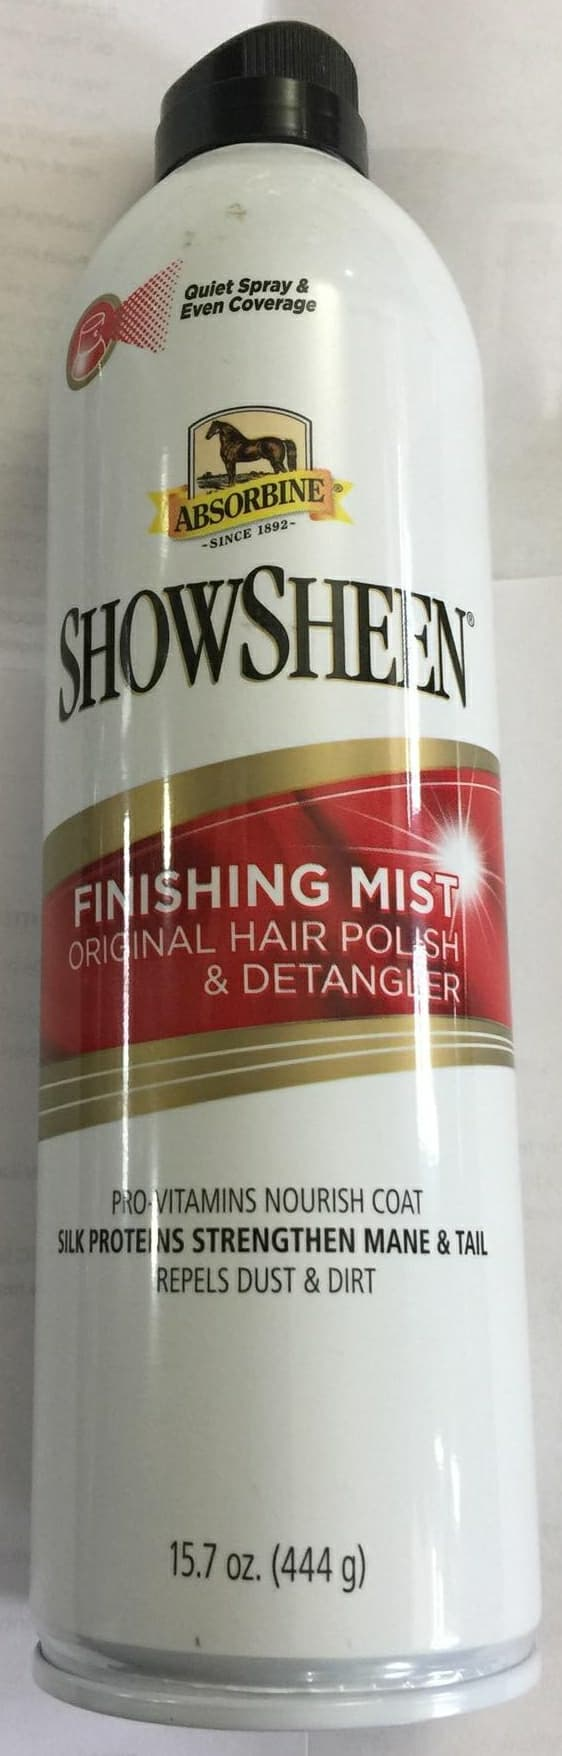 Showsheen Finishing Mist Aerosole